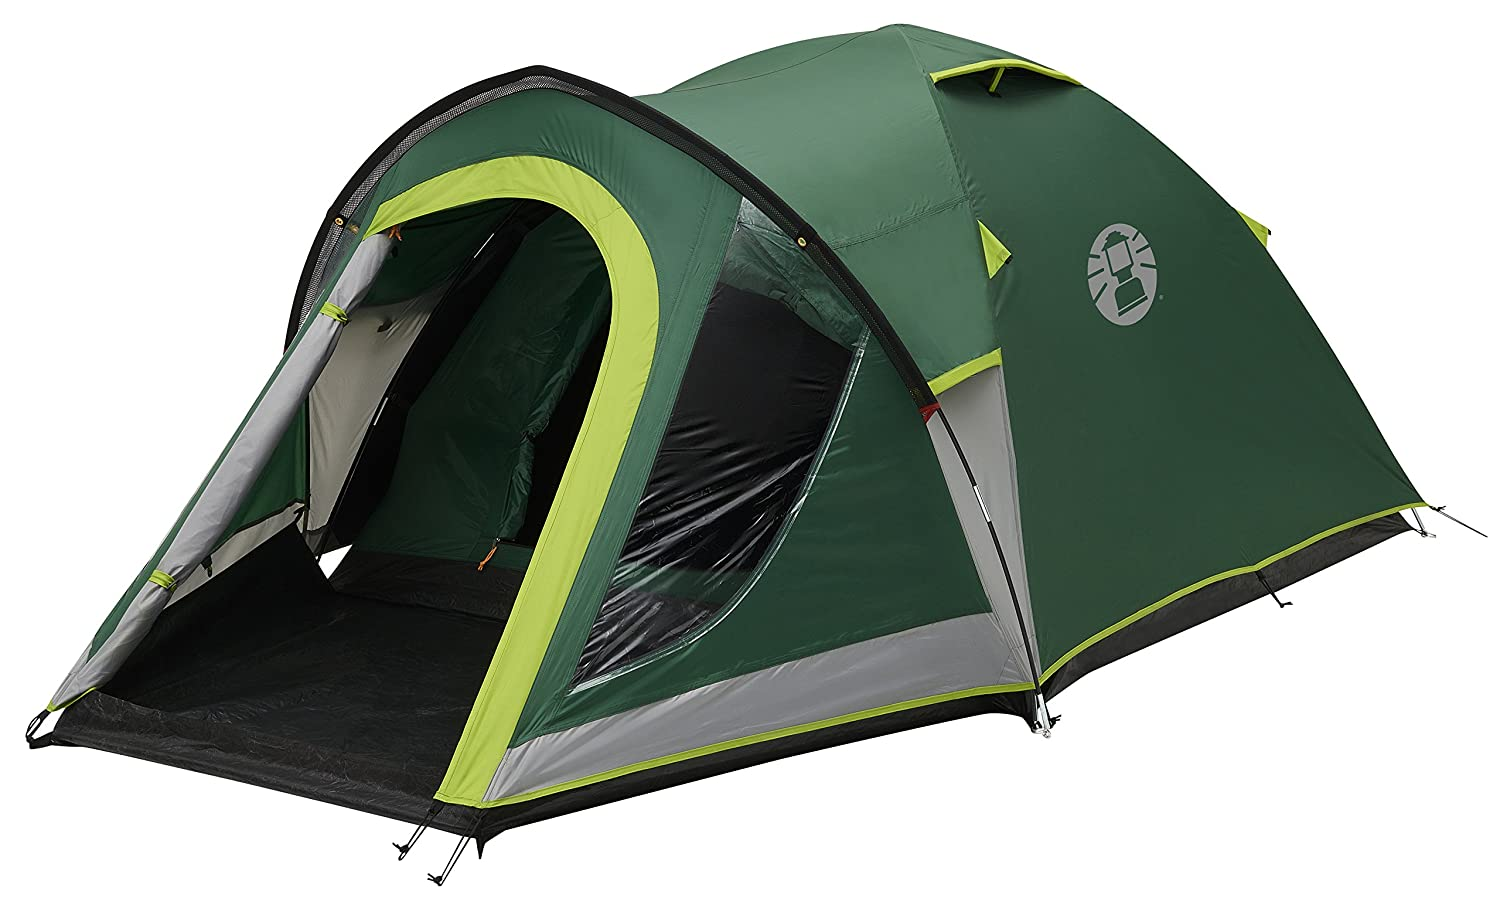 Coleman Tent Kobuk Valley 3/4 Plus3/4 man tent BlackOut Bedroom Technology Festival Essential 1 bedroom Family Dome Tent 100% waterproof C&ing Tent ...  sc 1 st  Amazon UK & Coleman Unisex Kobuk Valley 3+ Camping Tent Green: Amazon.co.uk ...